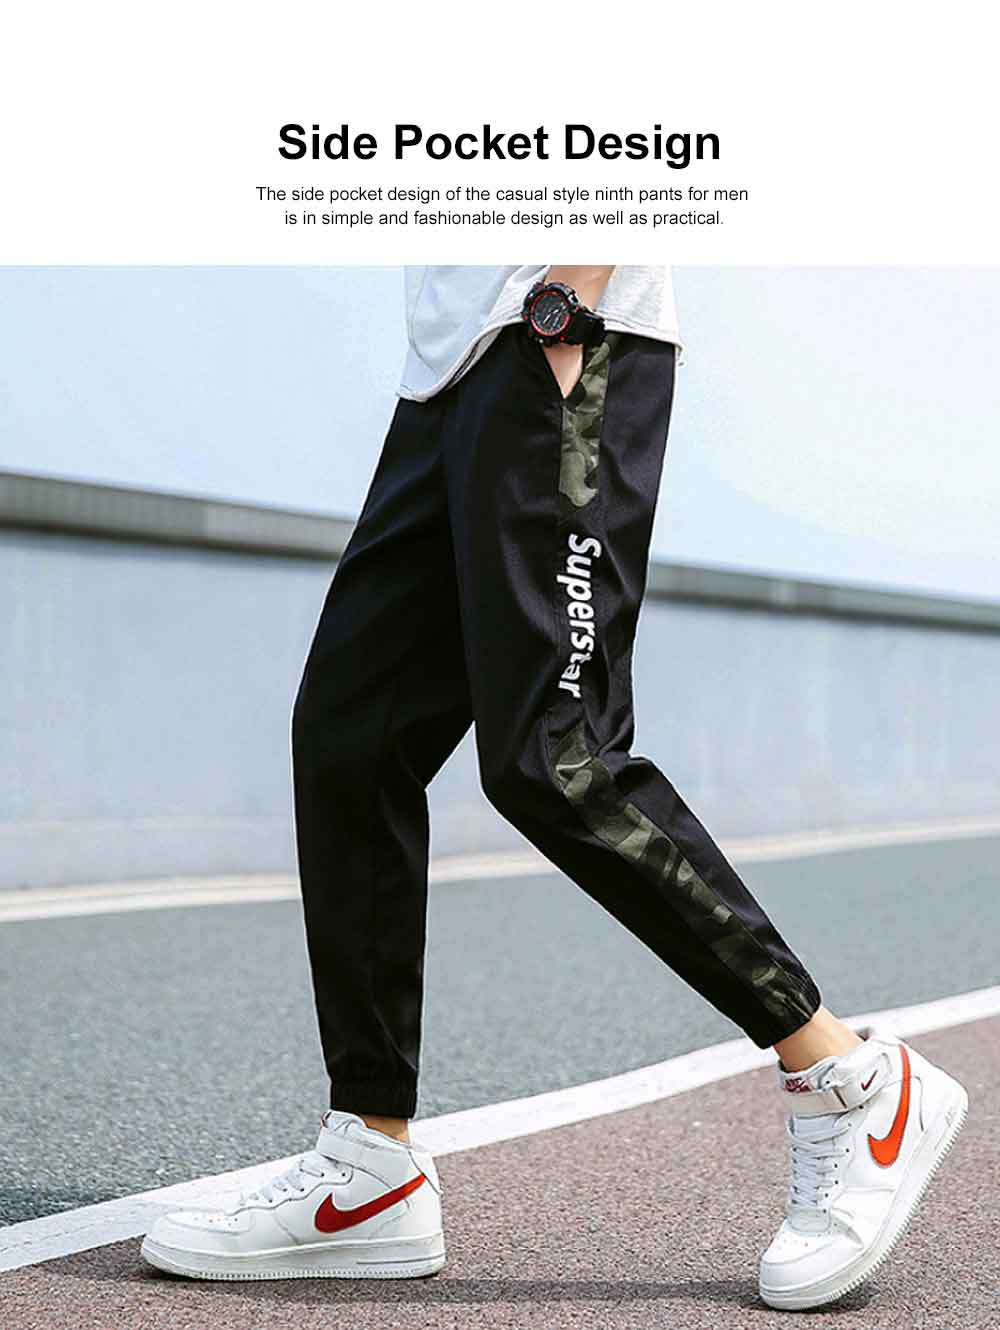 Casual Style Ninth Pants for Men's Summer Autumn, All-match Male Knickers Ankle-banded Pants for Students, Men's Sport Pants 1